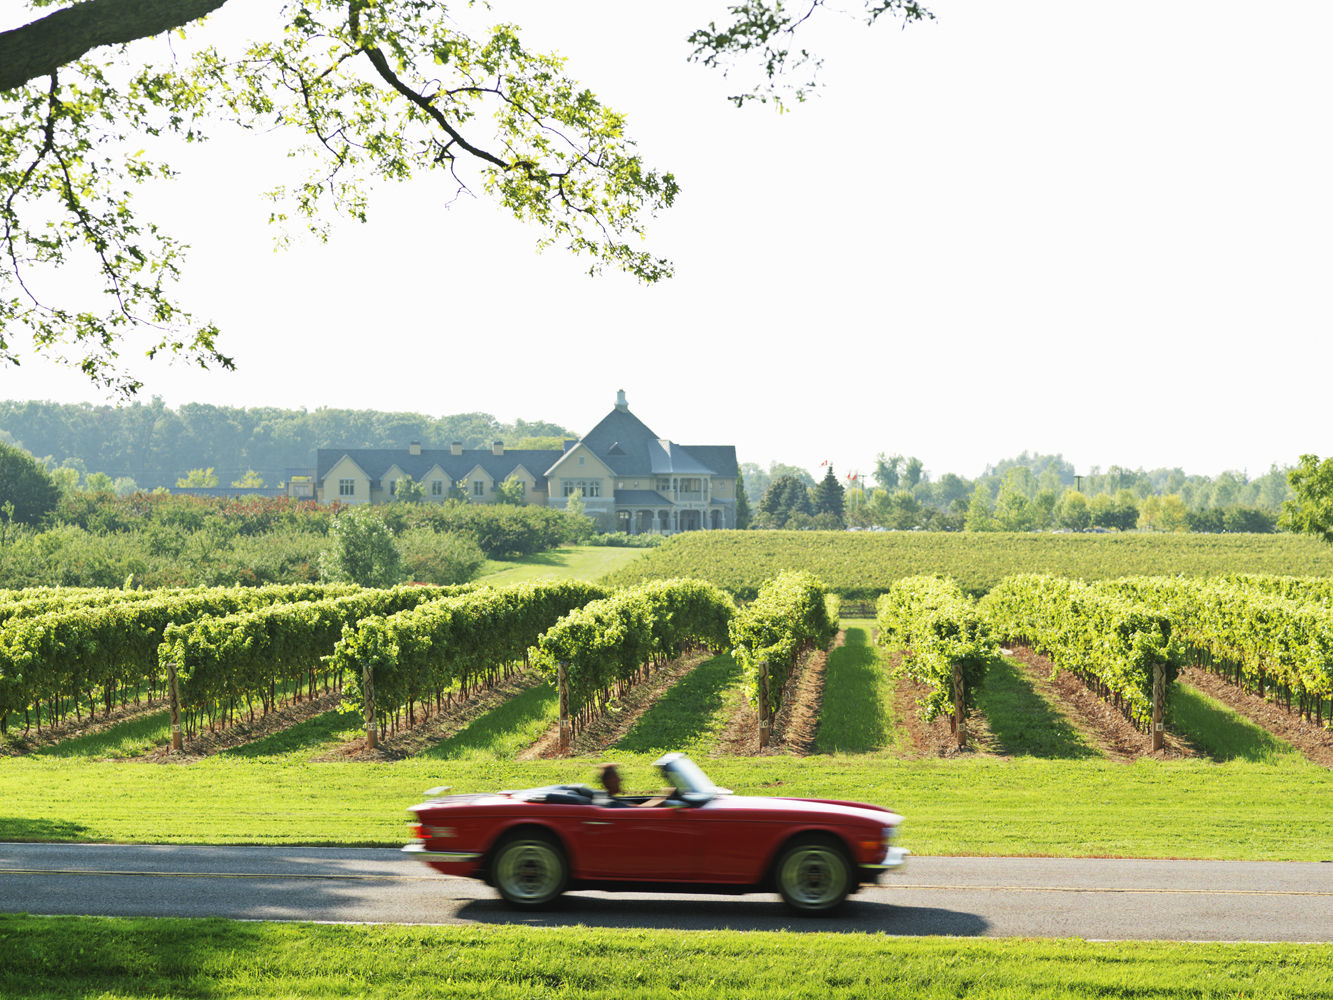 red sports car on road passing vineyards and winery in the Niaga